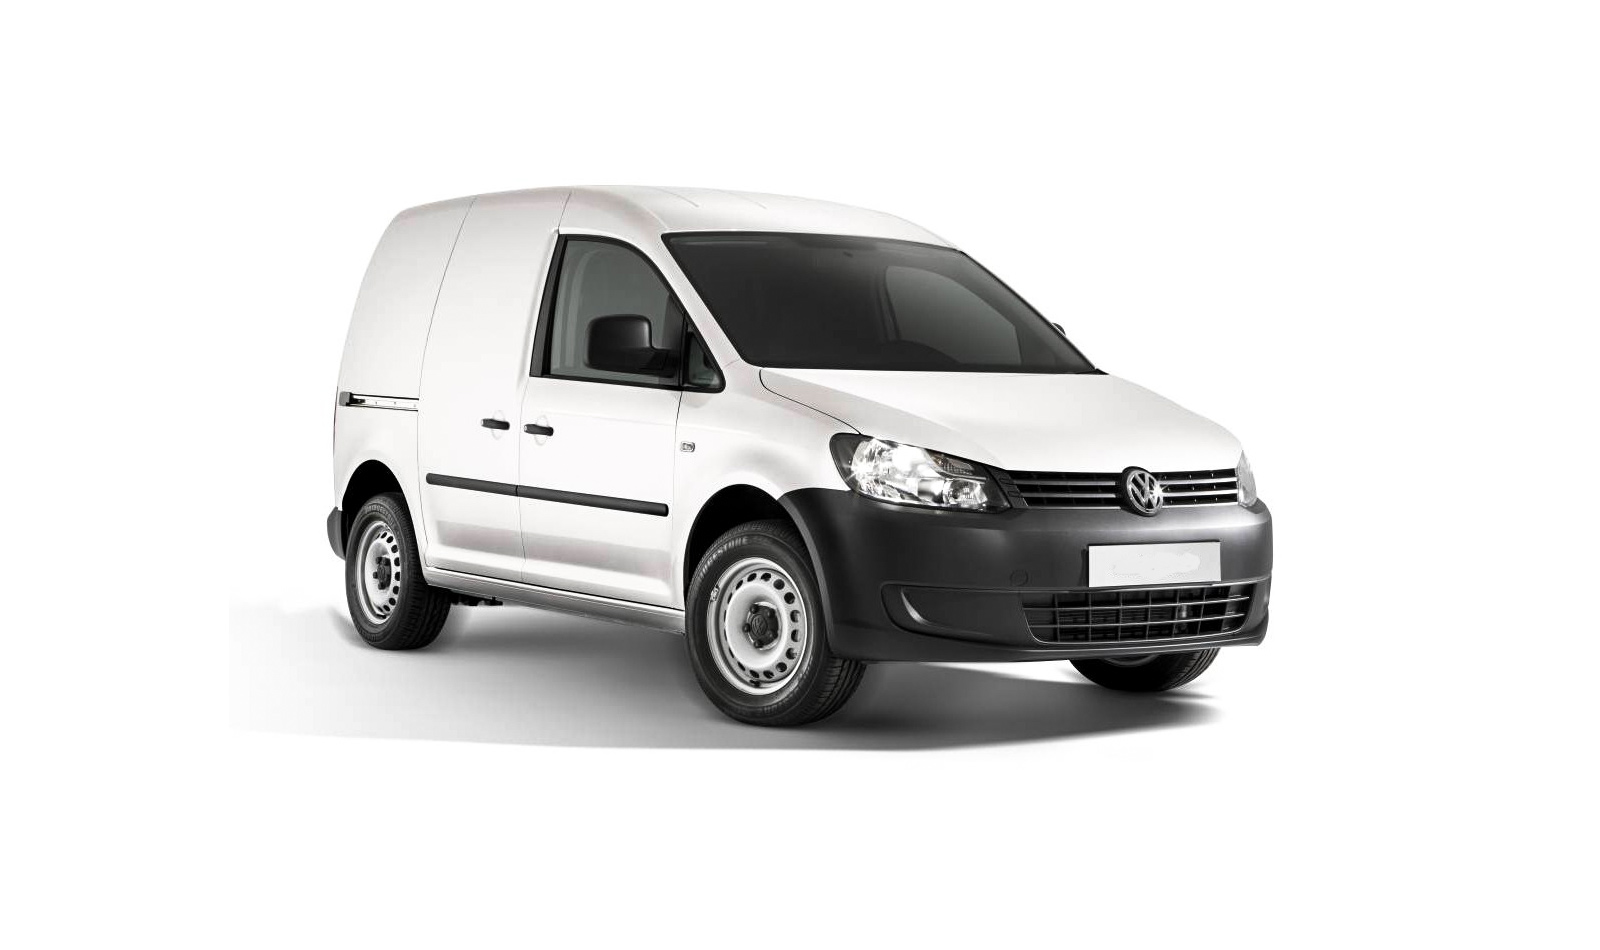 volkswagen caddy startline van swiss vans ltd bridgend. Black Bedroom Furniture Sets. Home Design Ideas